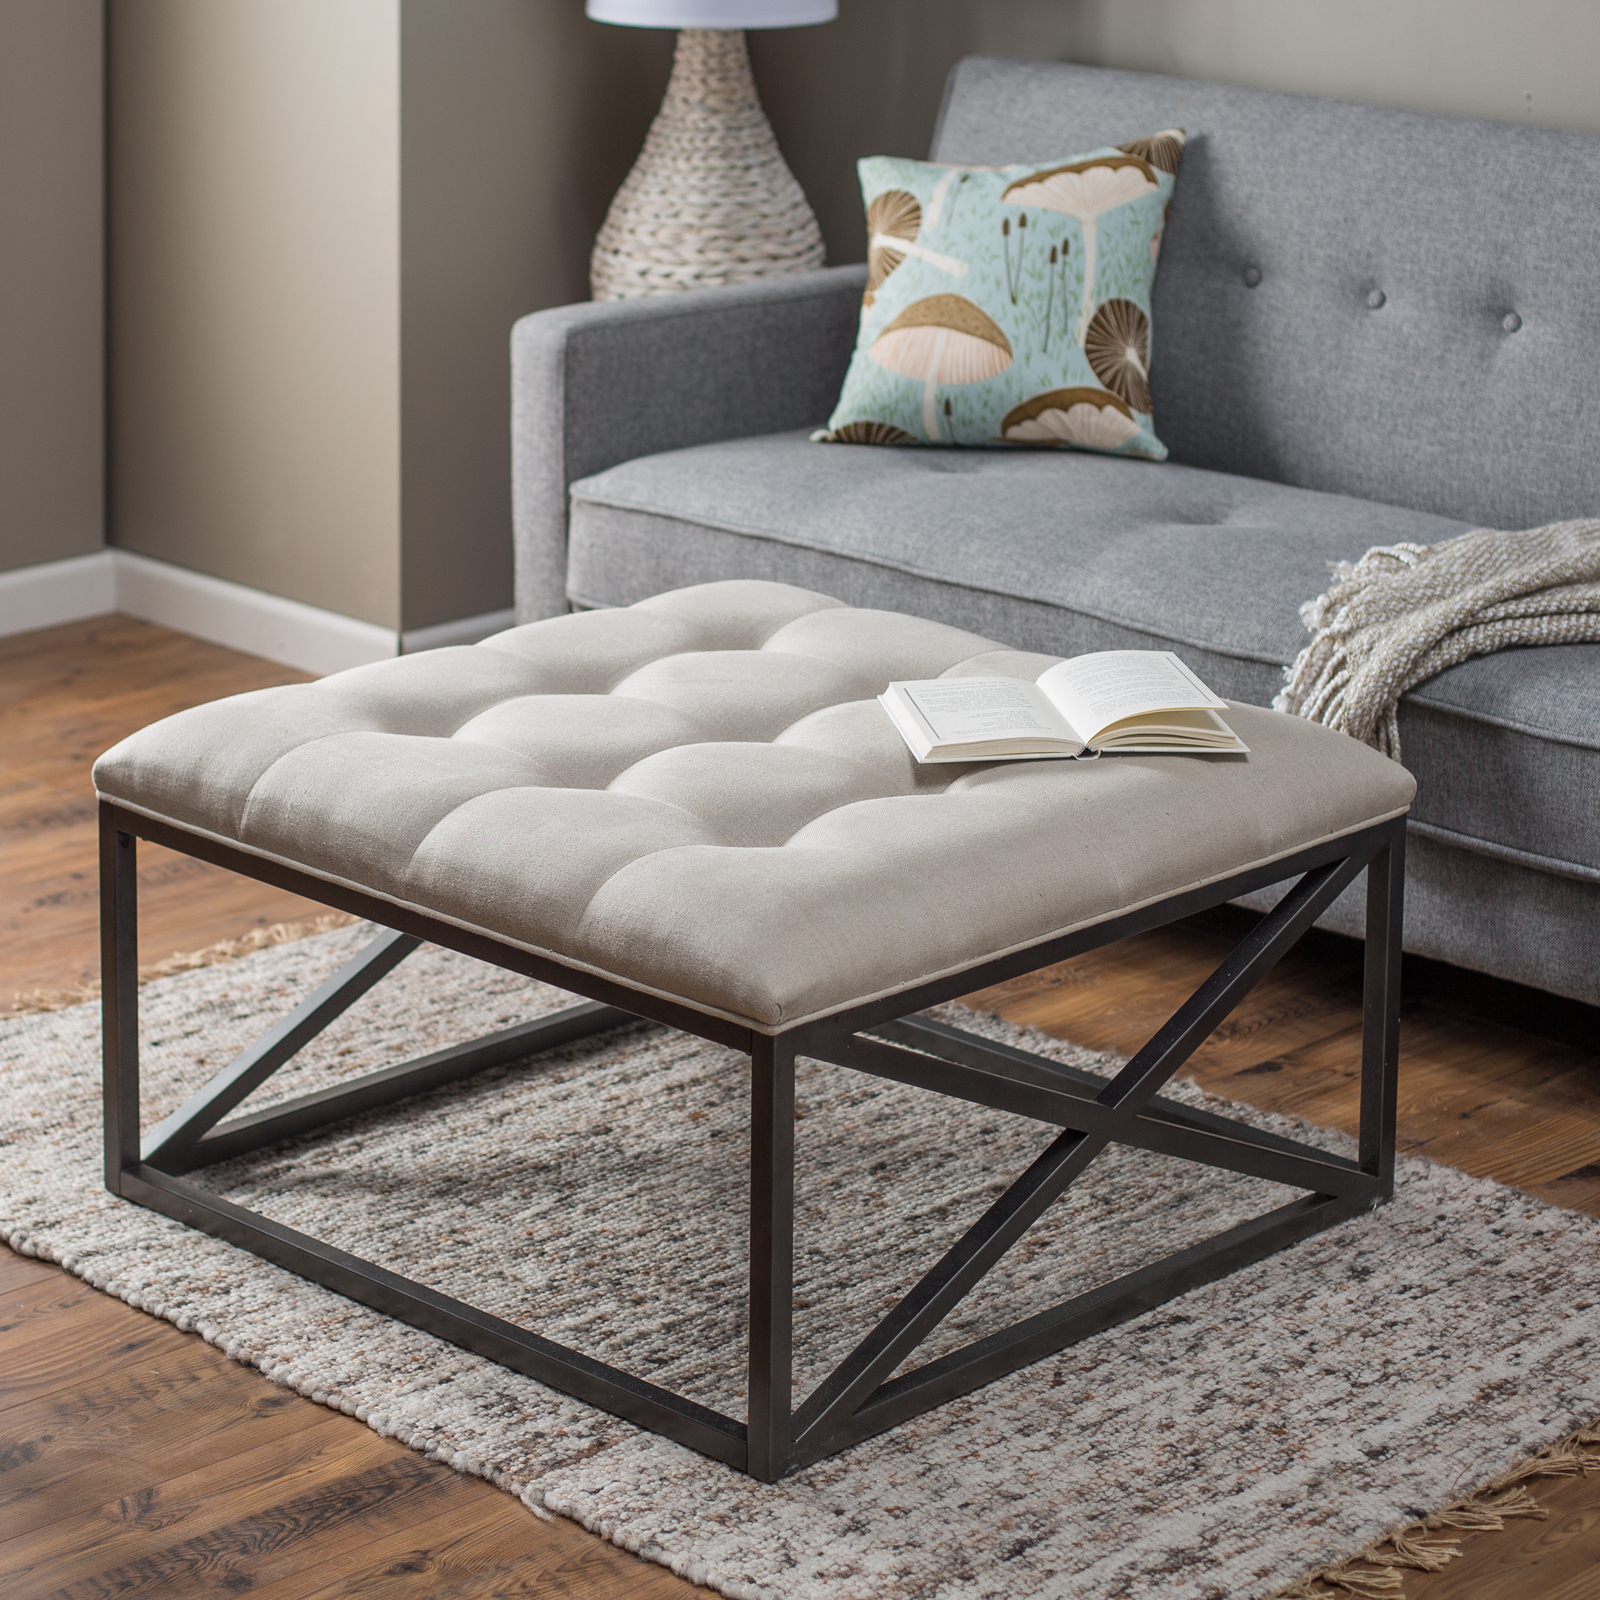 Belham Living Grayson Tufted Coffee Table Ottoman